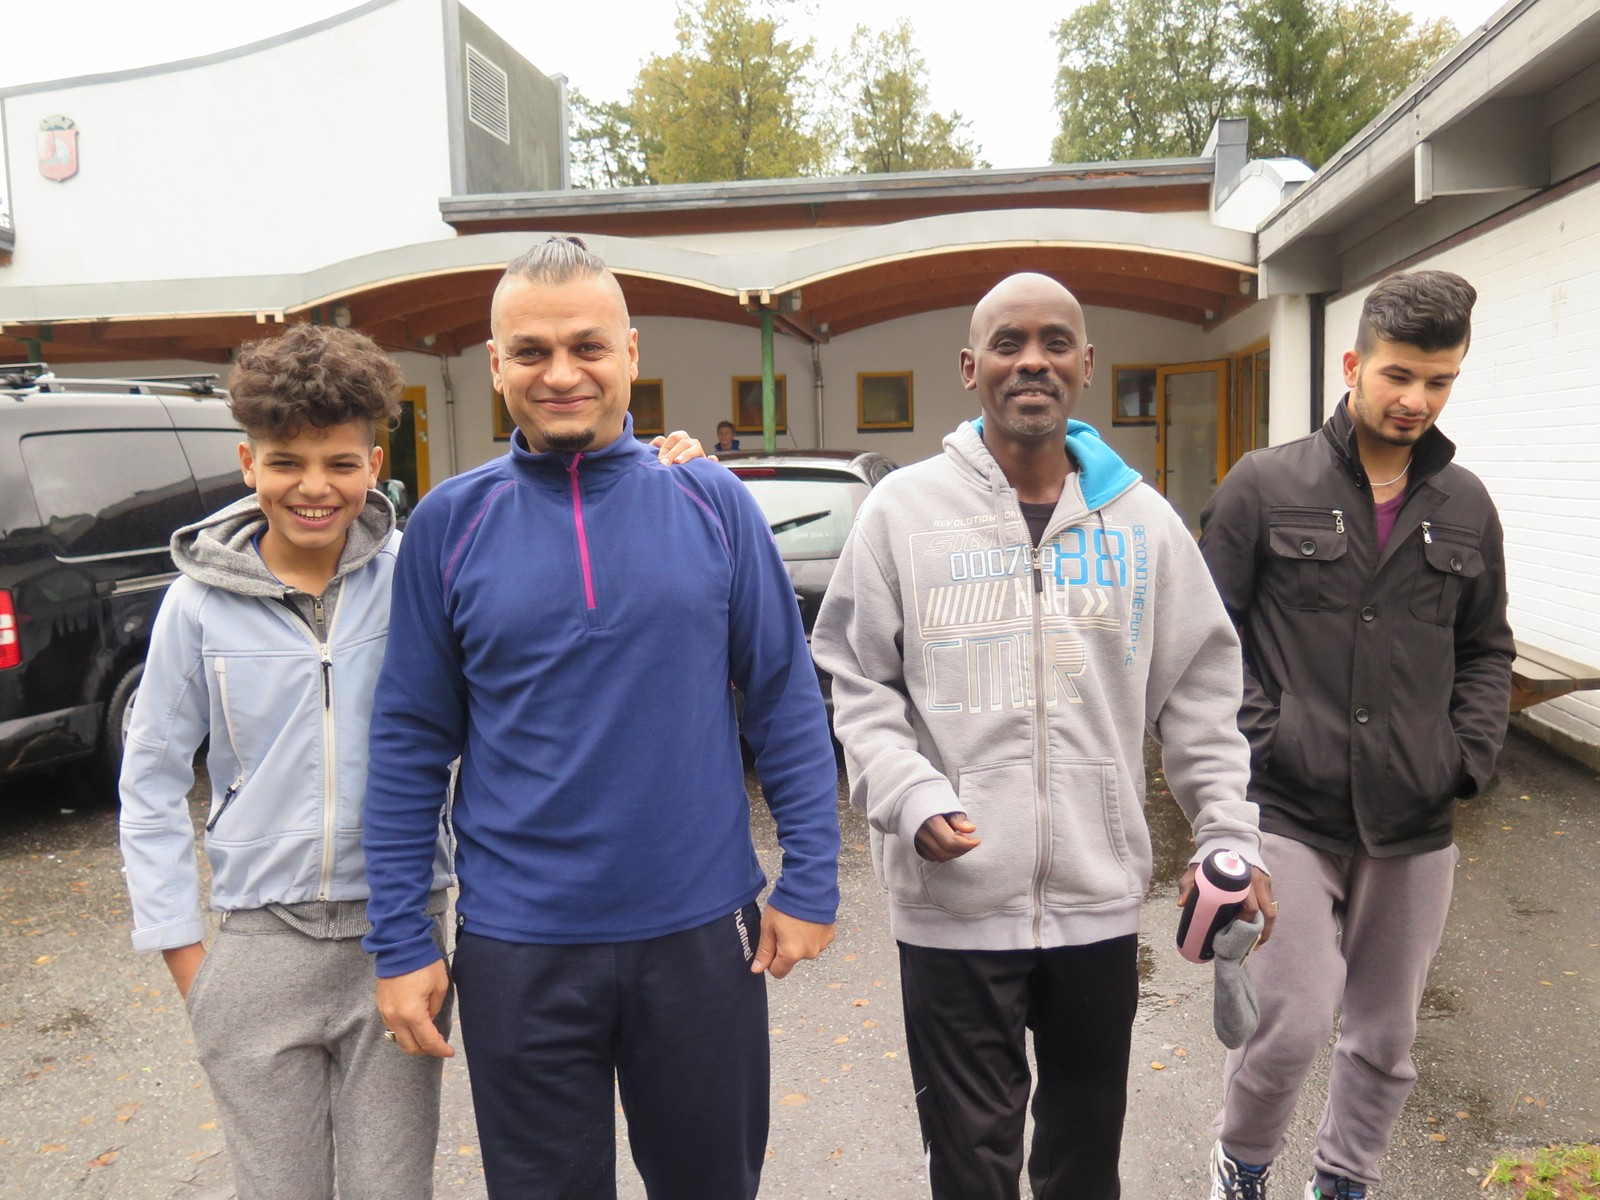 Ahmed, Dashti, Saywan og Wheiri klare for familietur